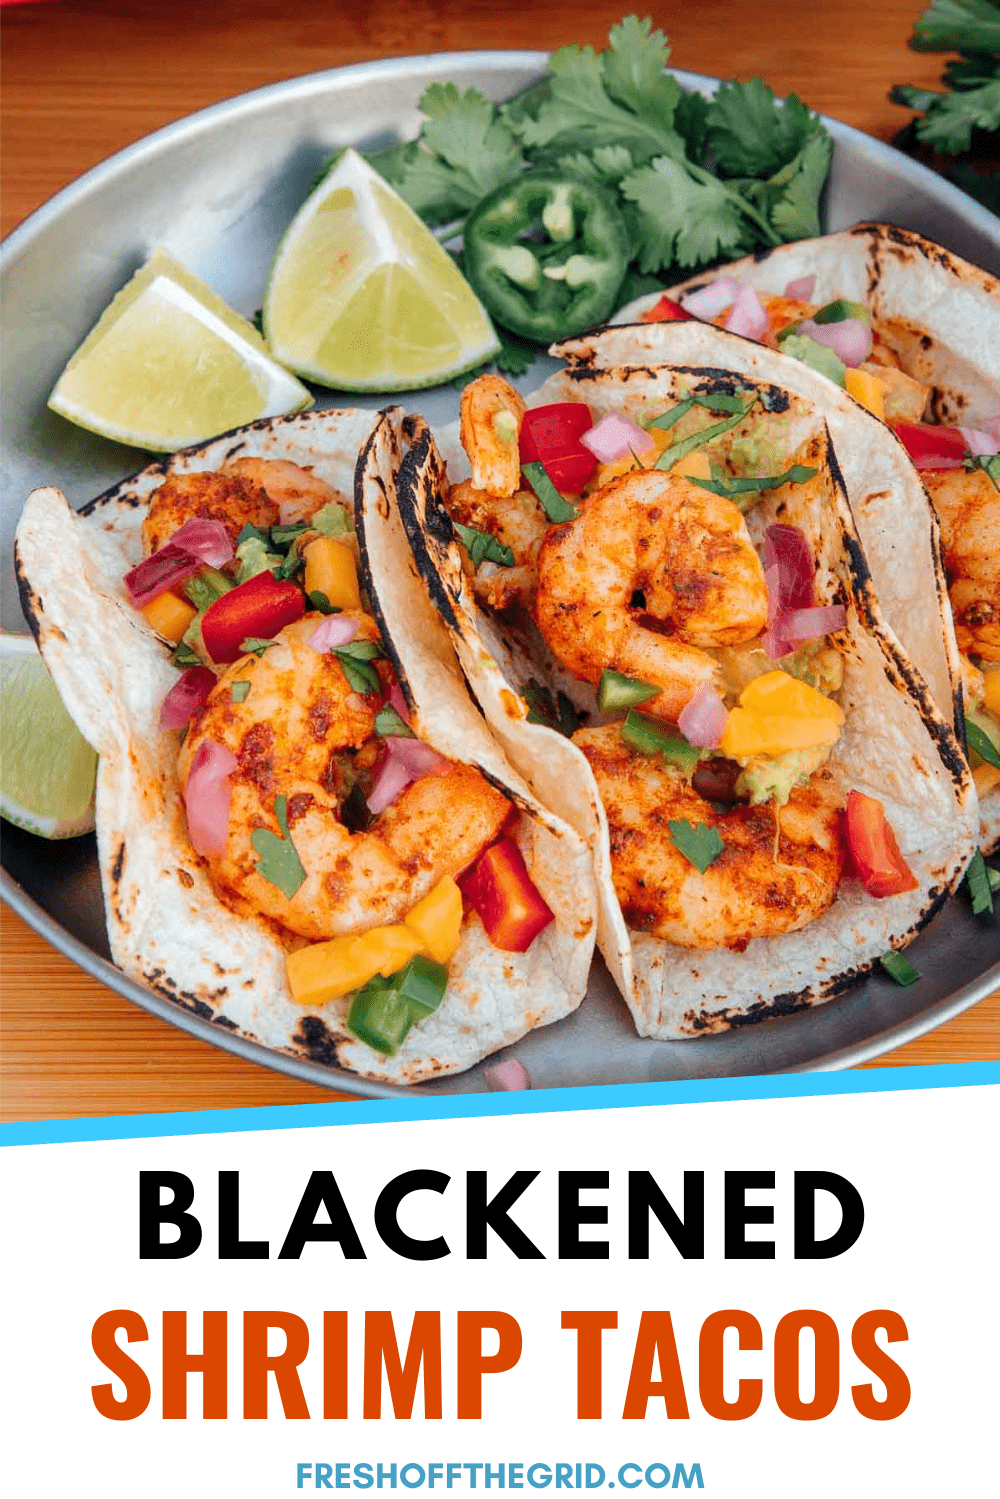 This Blackened Shrimp Tacos recipe is so EASY to make while camping! Slightly spicy Cajun seasoning gives these tacos big flavor while coming together in one pan and under 15 minutes! via @freshoffthegrid